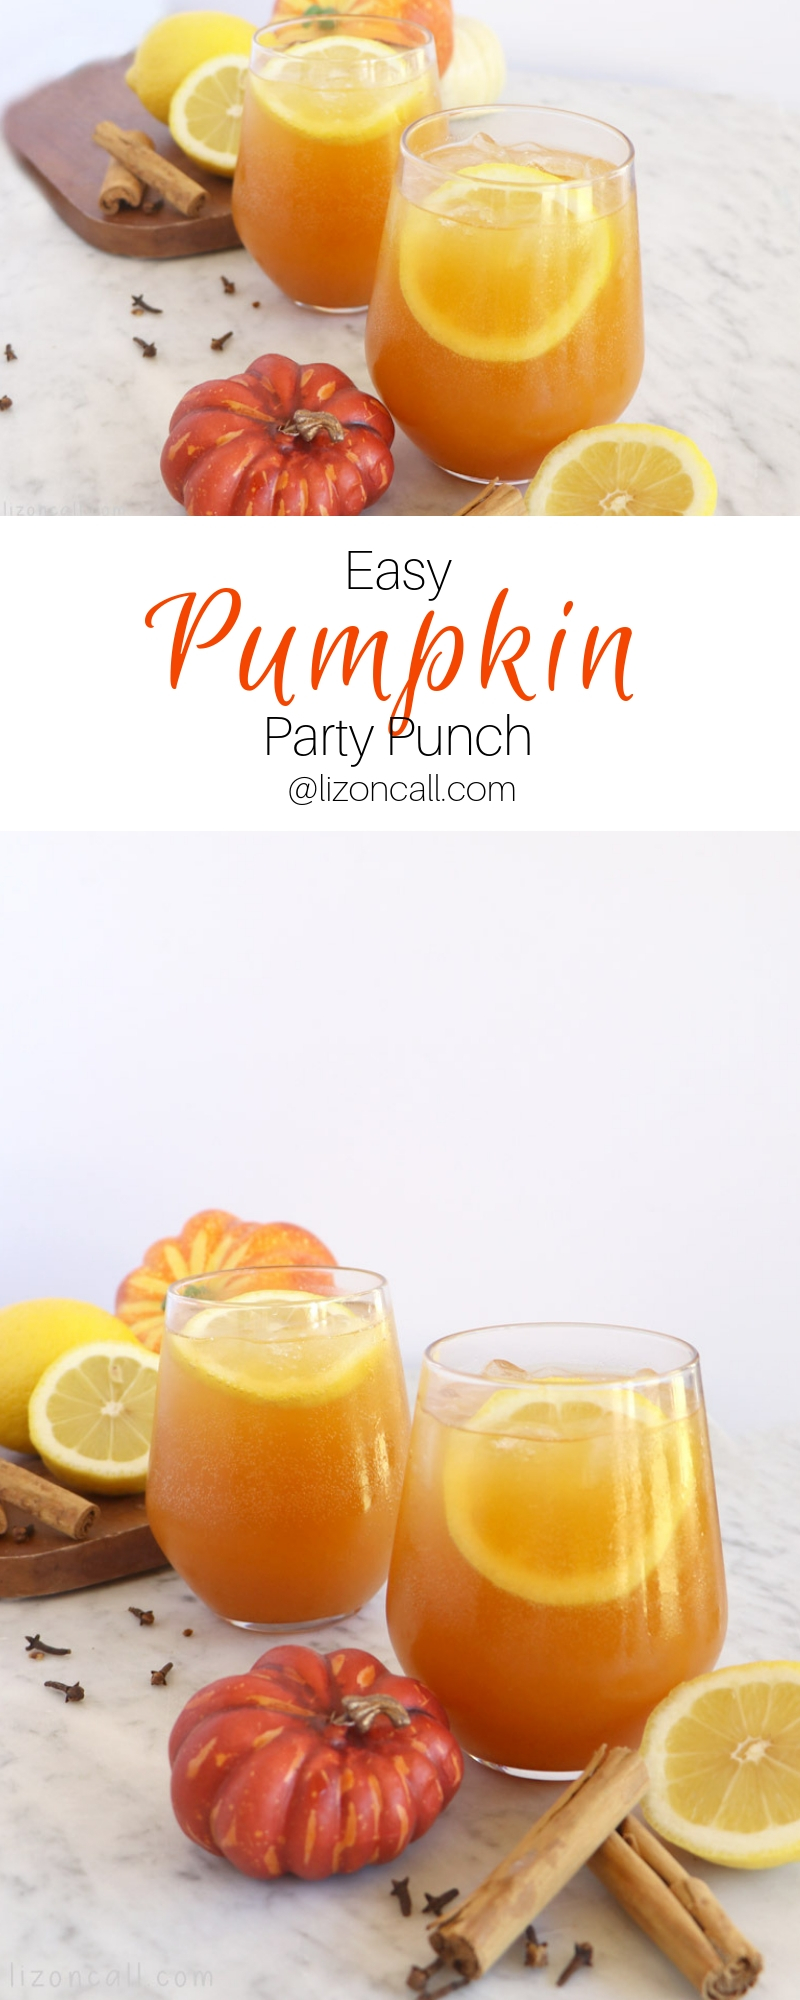 Titled pinnable image glasses of pumpkin party punch garnished with lemons and cinnamon sticks